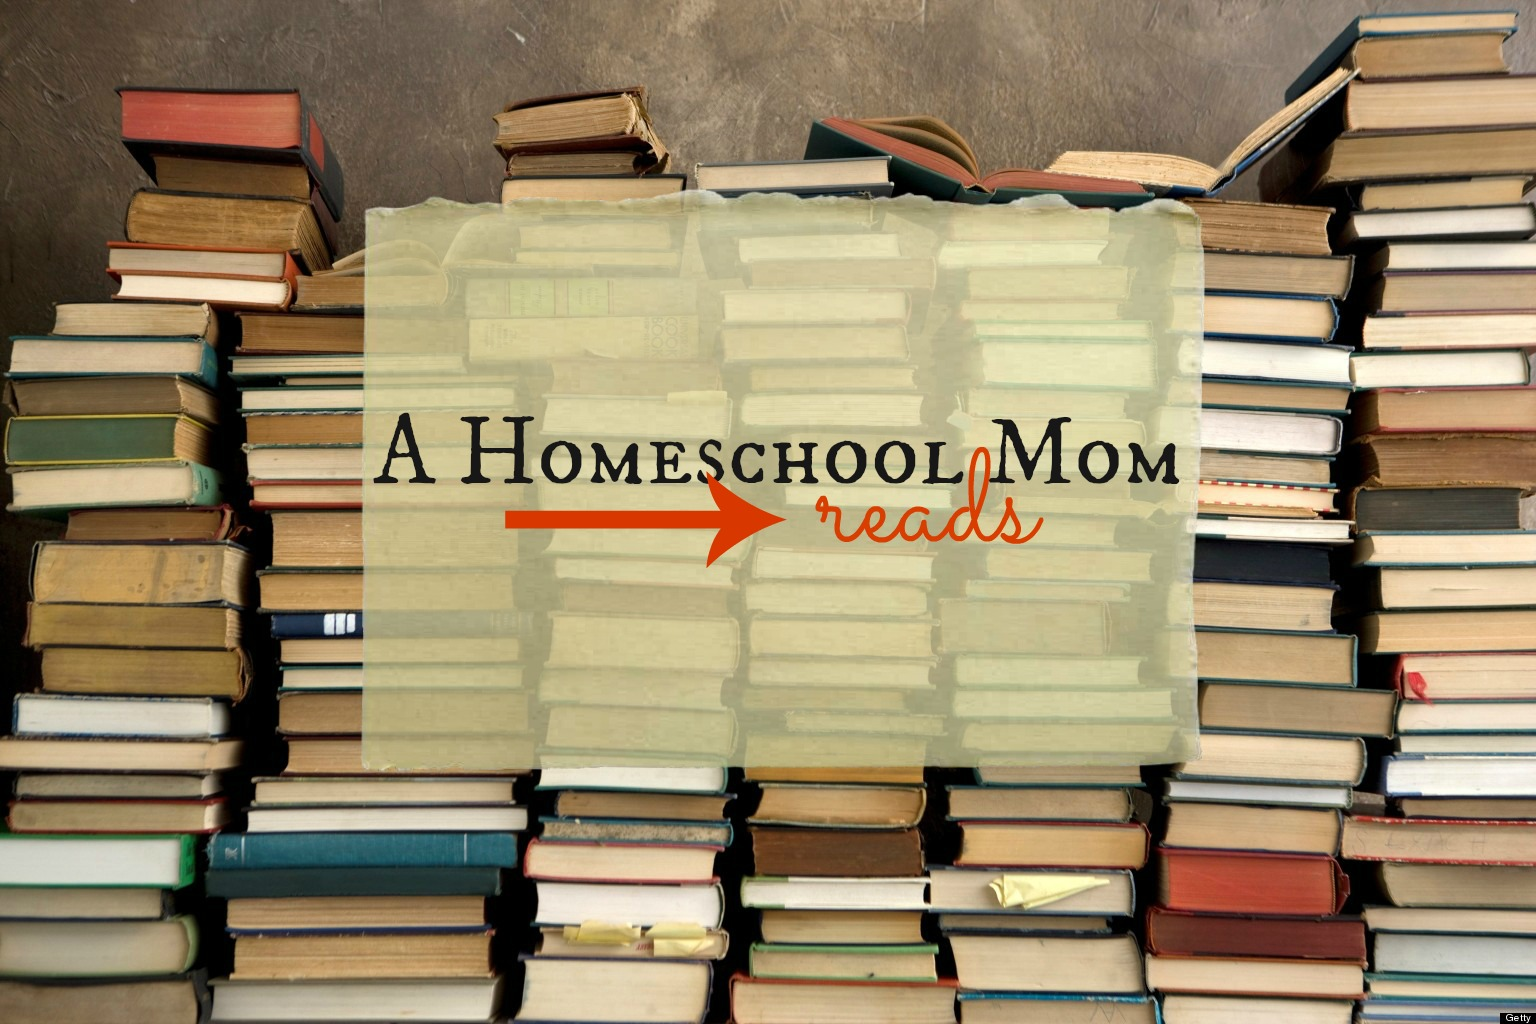 A Homeschool Mom Reads: January through April